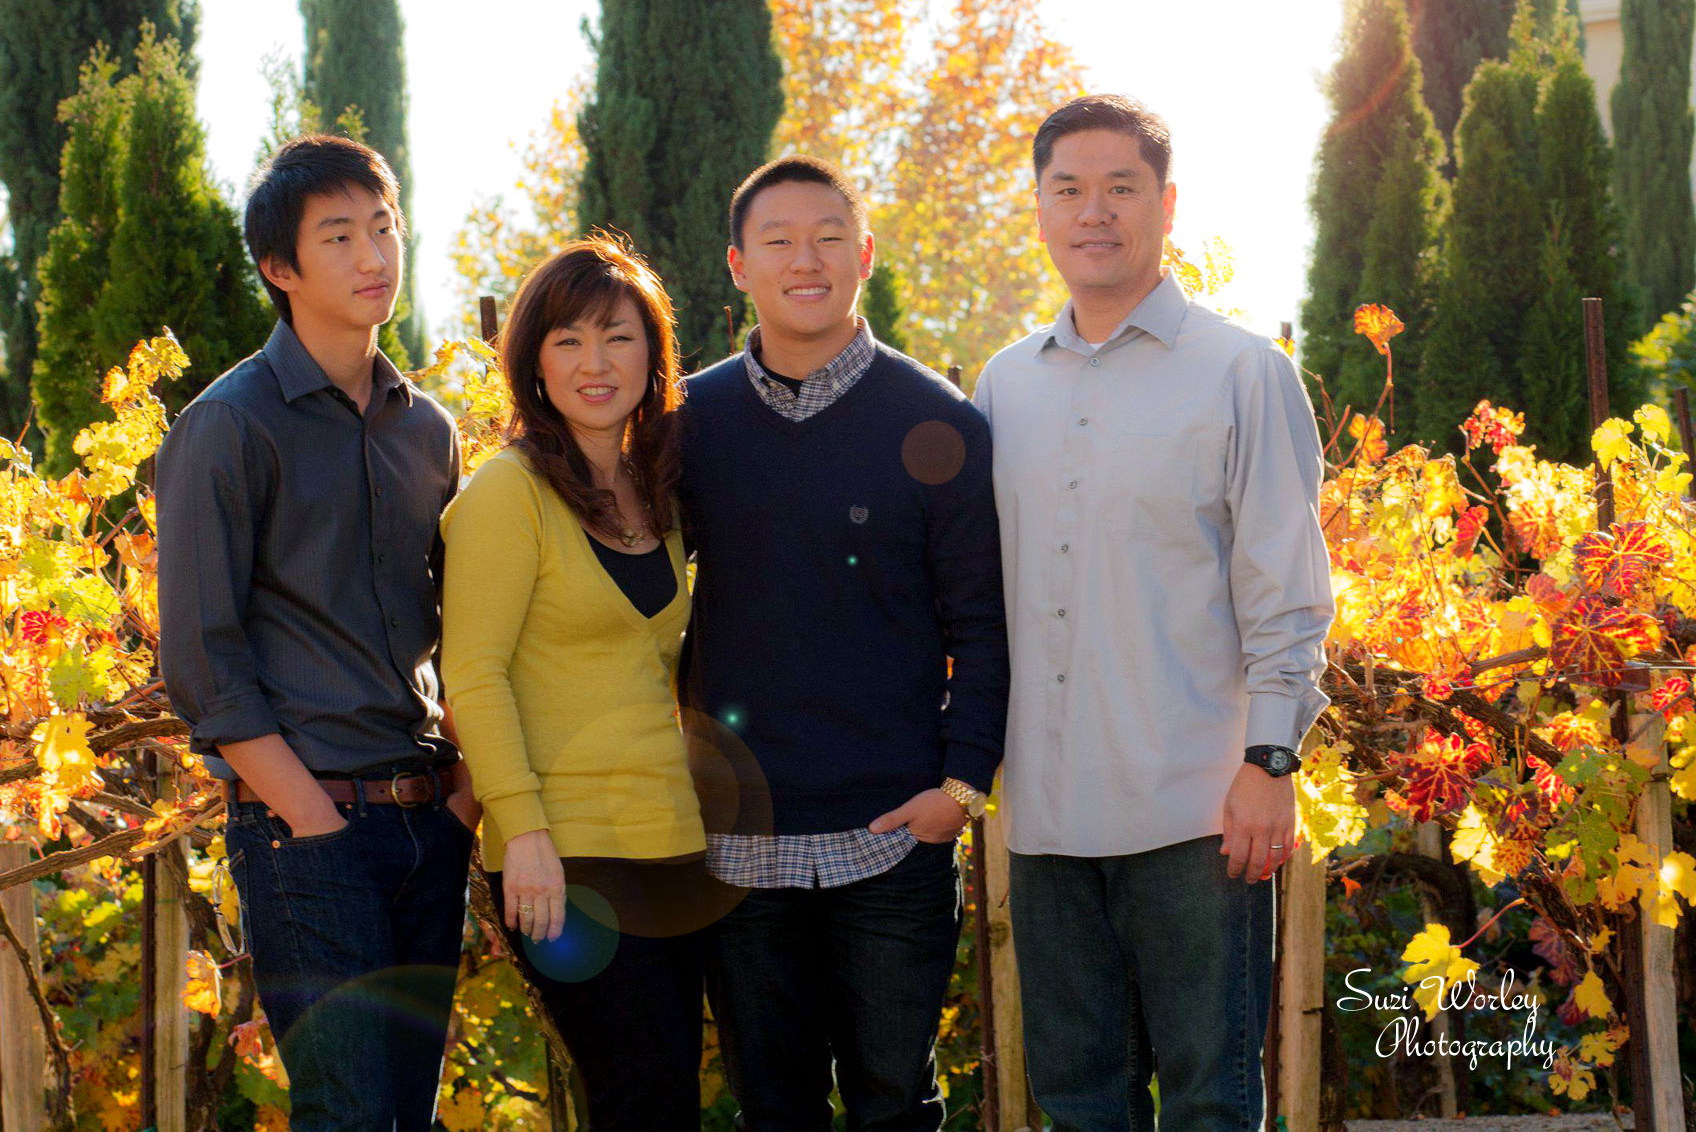 Fall harvest family session. #Grapevines #family #boys #SuziWorleyPhotography